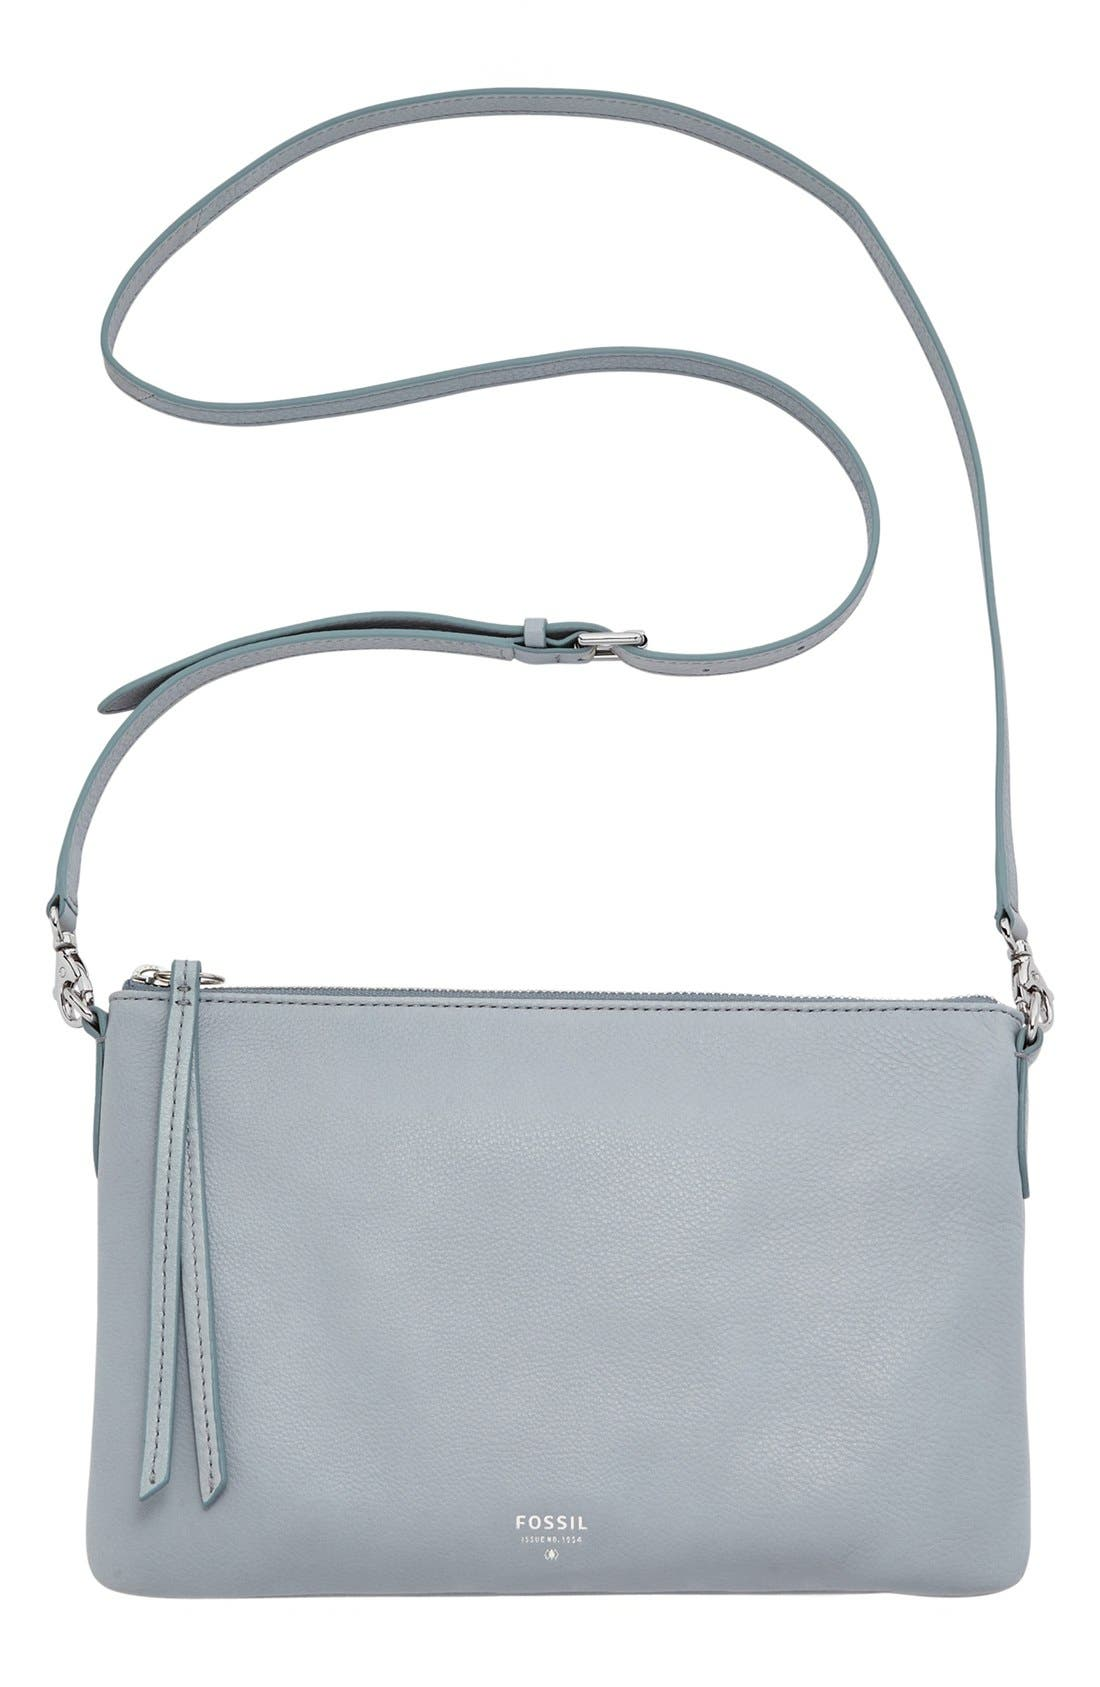 Alternate Image 2  - Fossil 'Sydney' Crossbody Bag